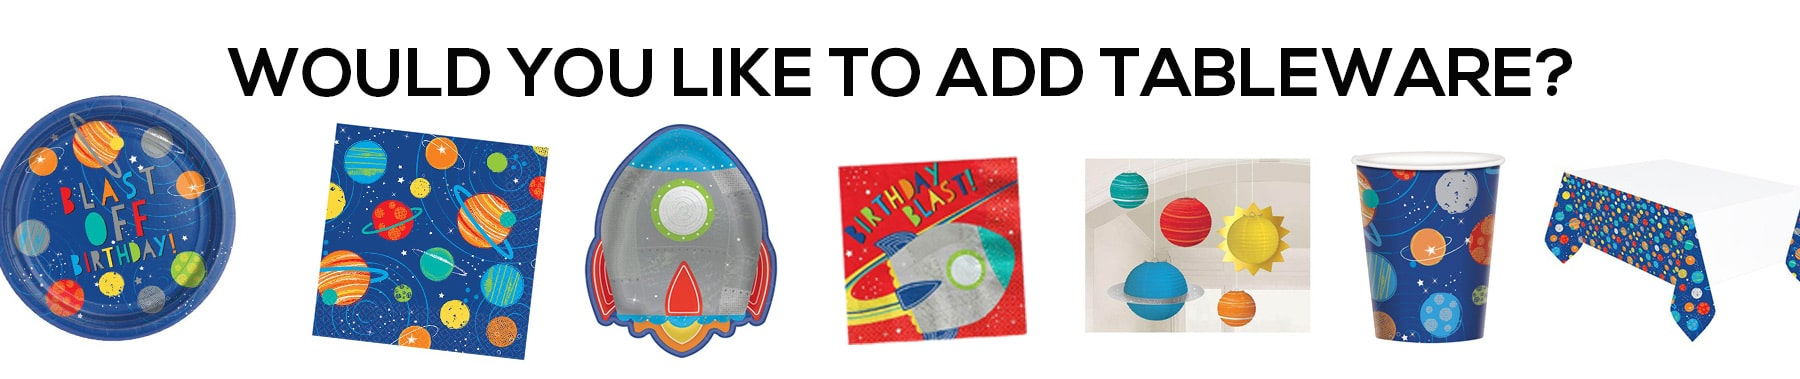 space party tableware, space table wear